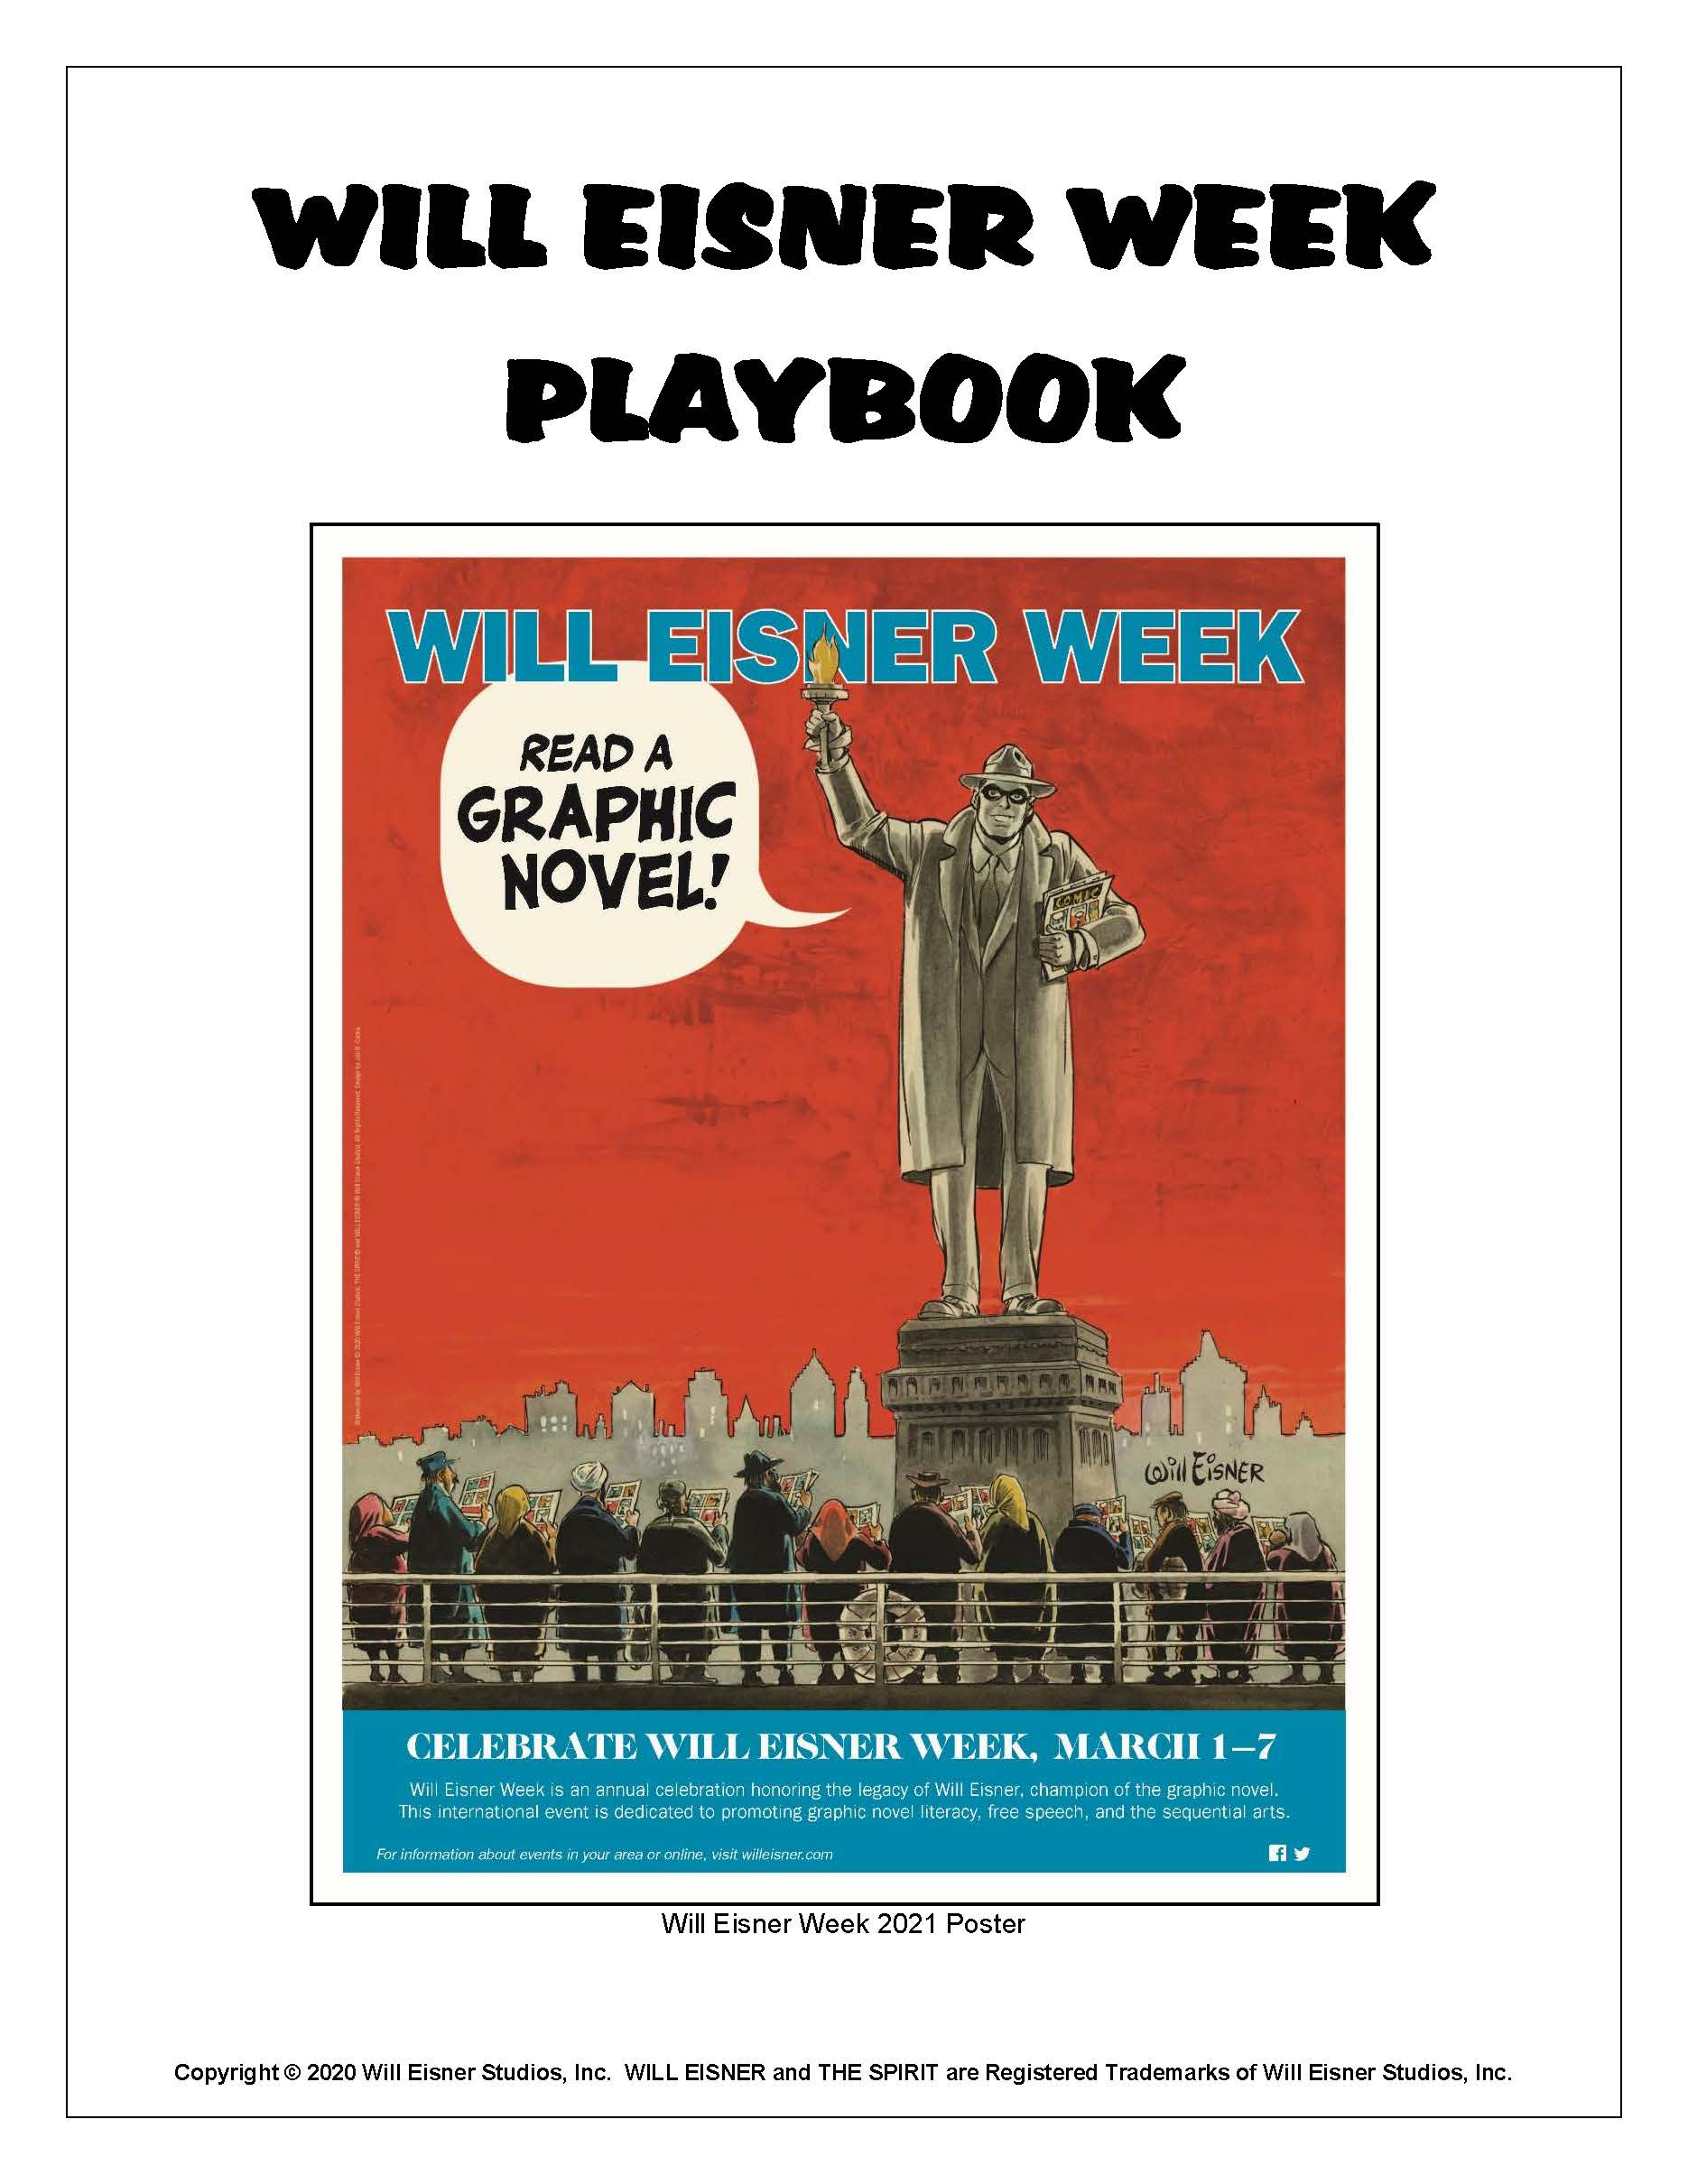 http://www.willeisner.com/the_eisnershpritz/WEFF_WEW2021_Playbook_cover.jpg